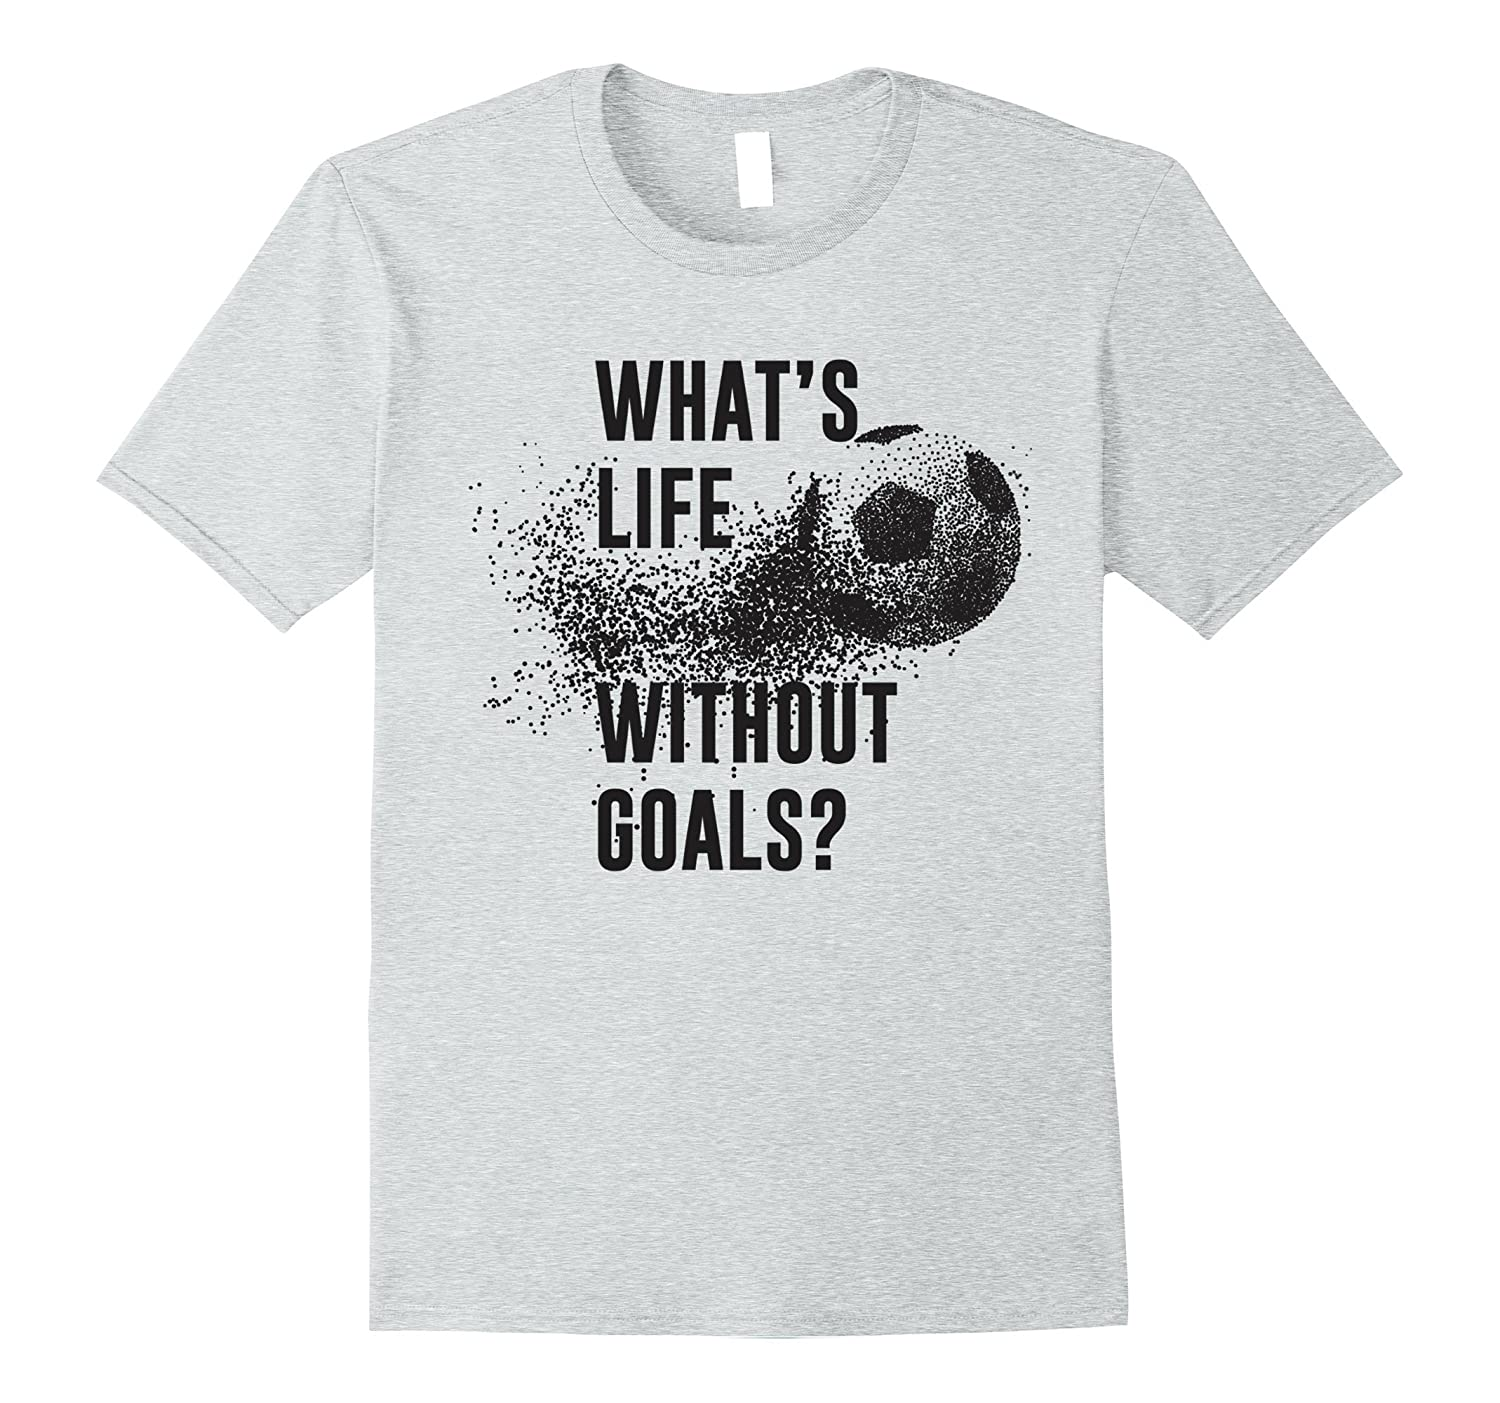 23b9a96c3 Whats Life Without Goals Funny Gift Soccer T-shirt-PL – Polozatee